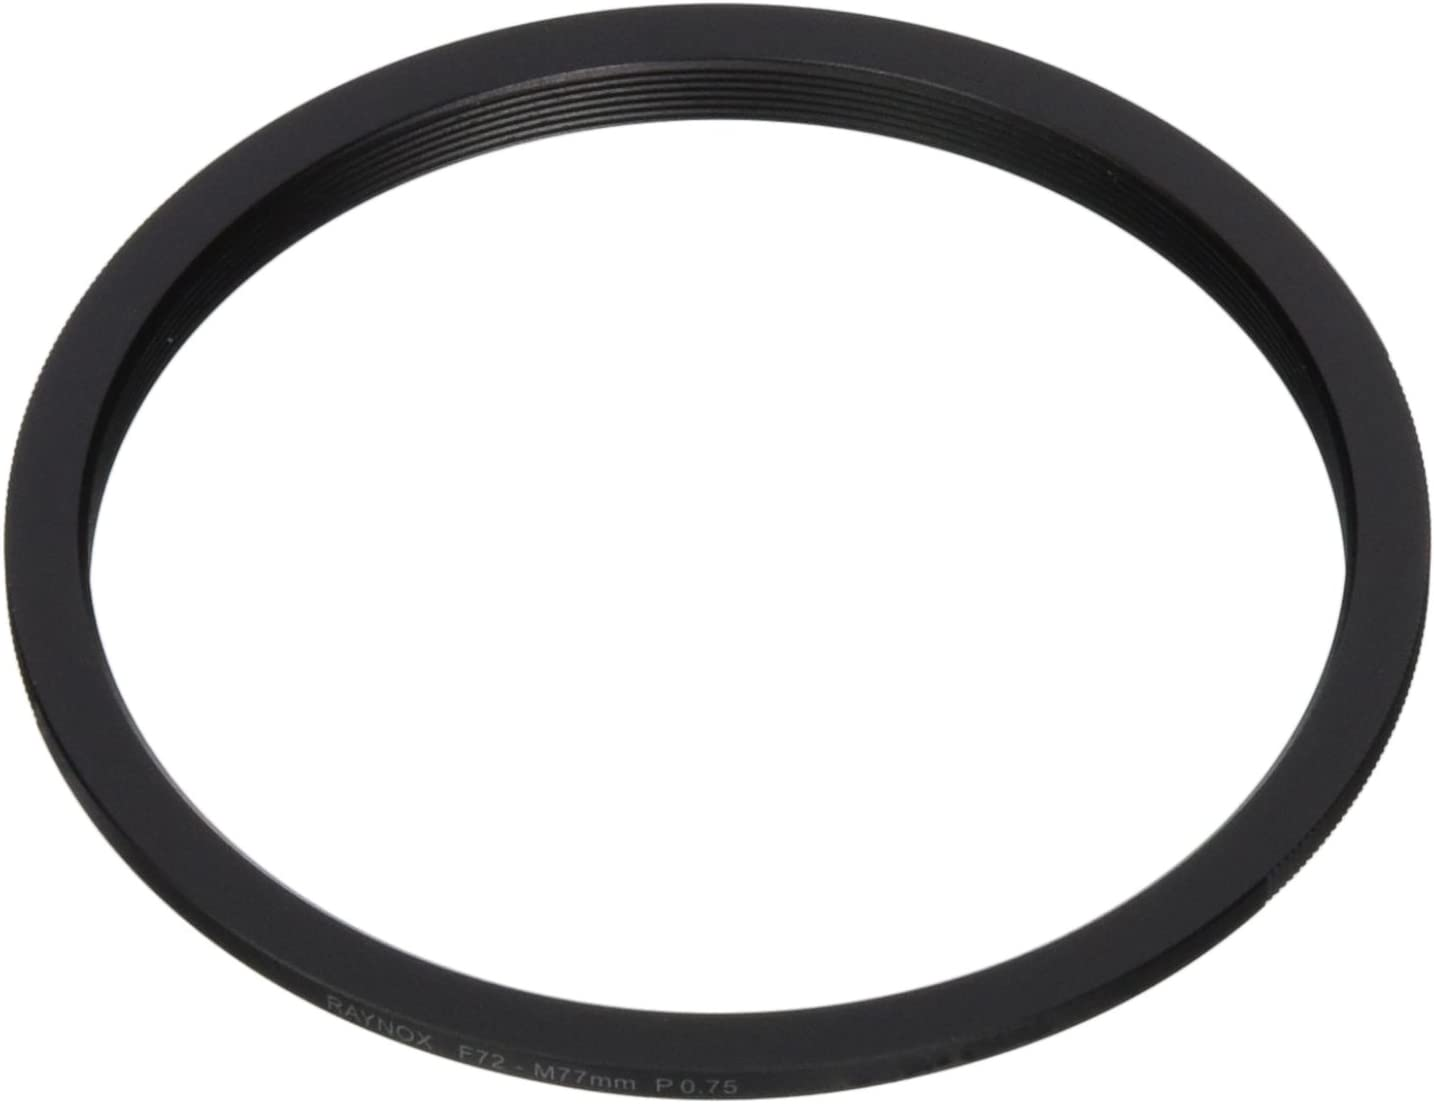 for 77mm filter size camera Adapter ring F72-M77mm